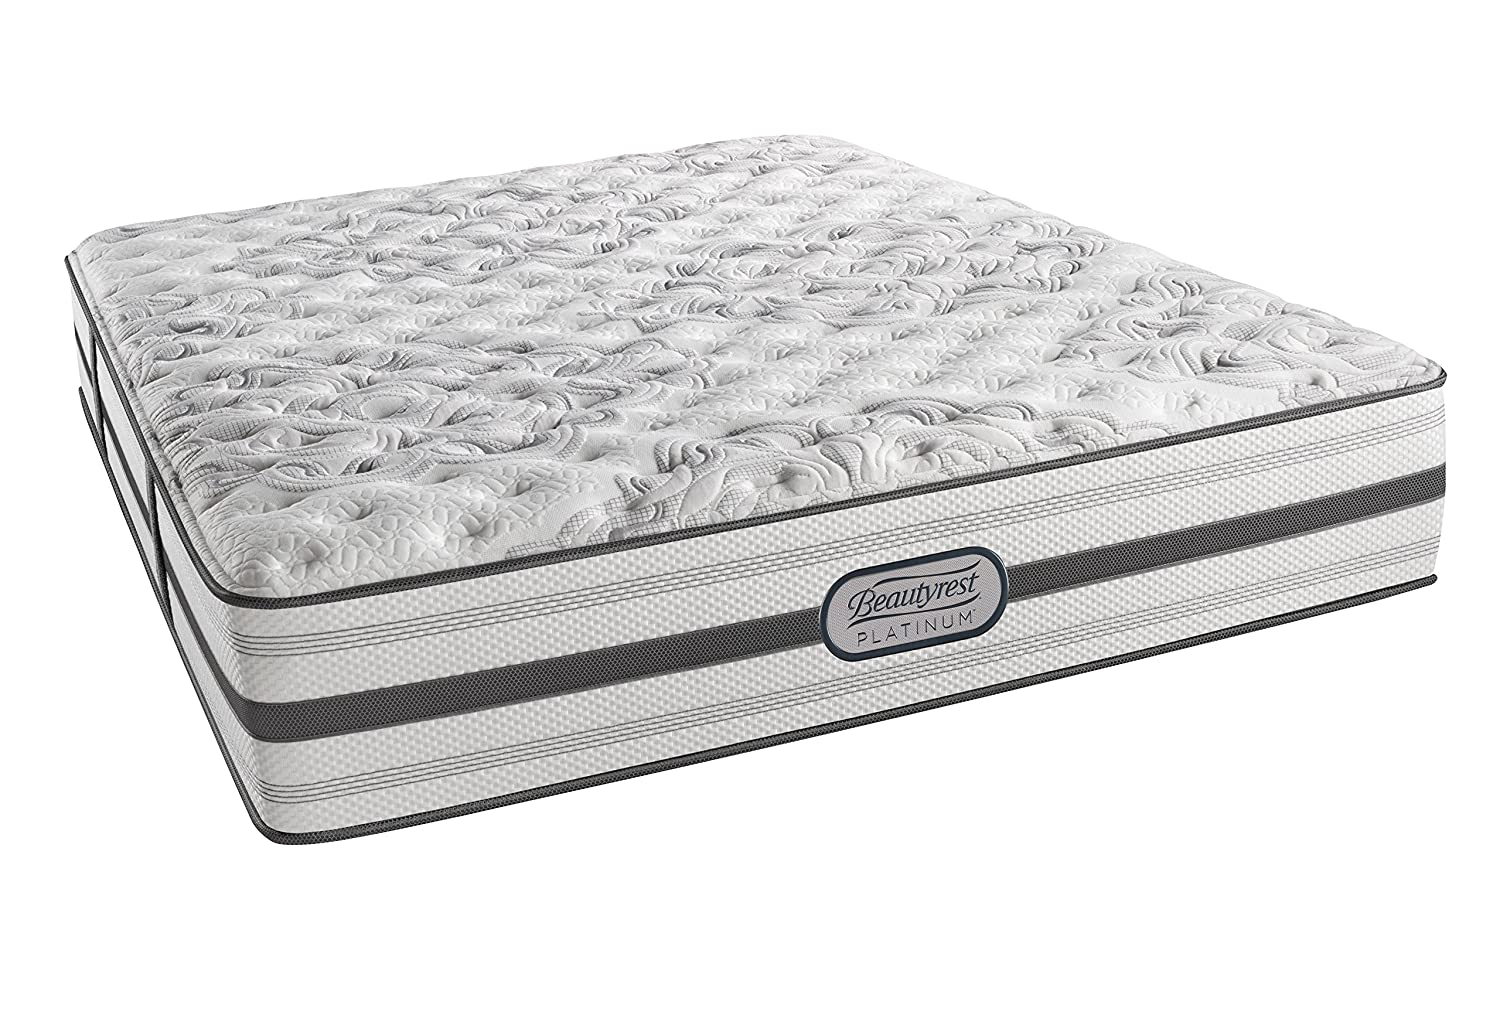 amazon com beautyrest platinum extra firm badger queen innerspring